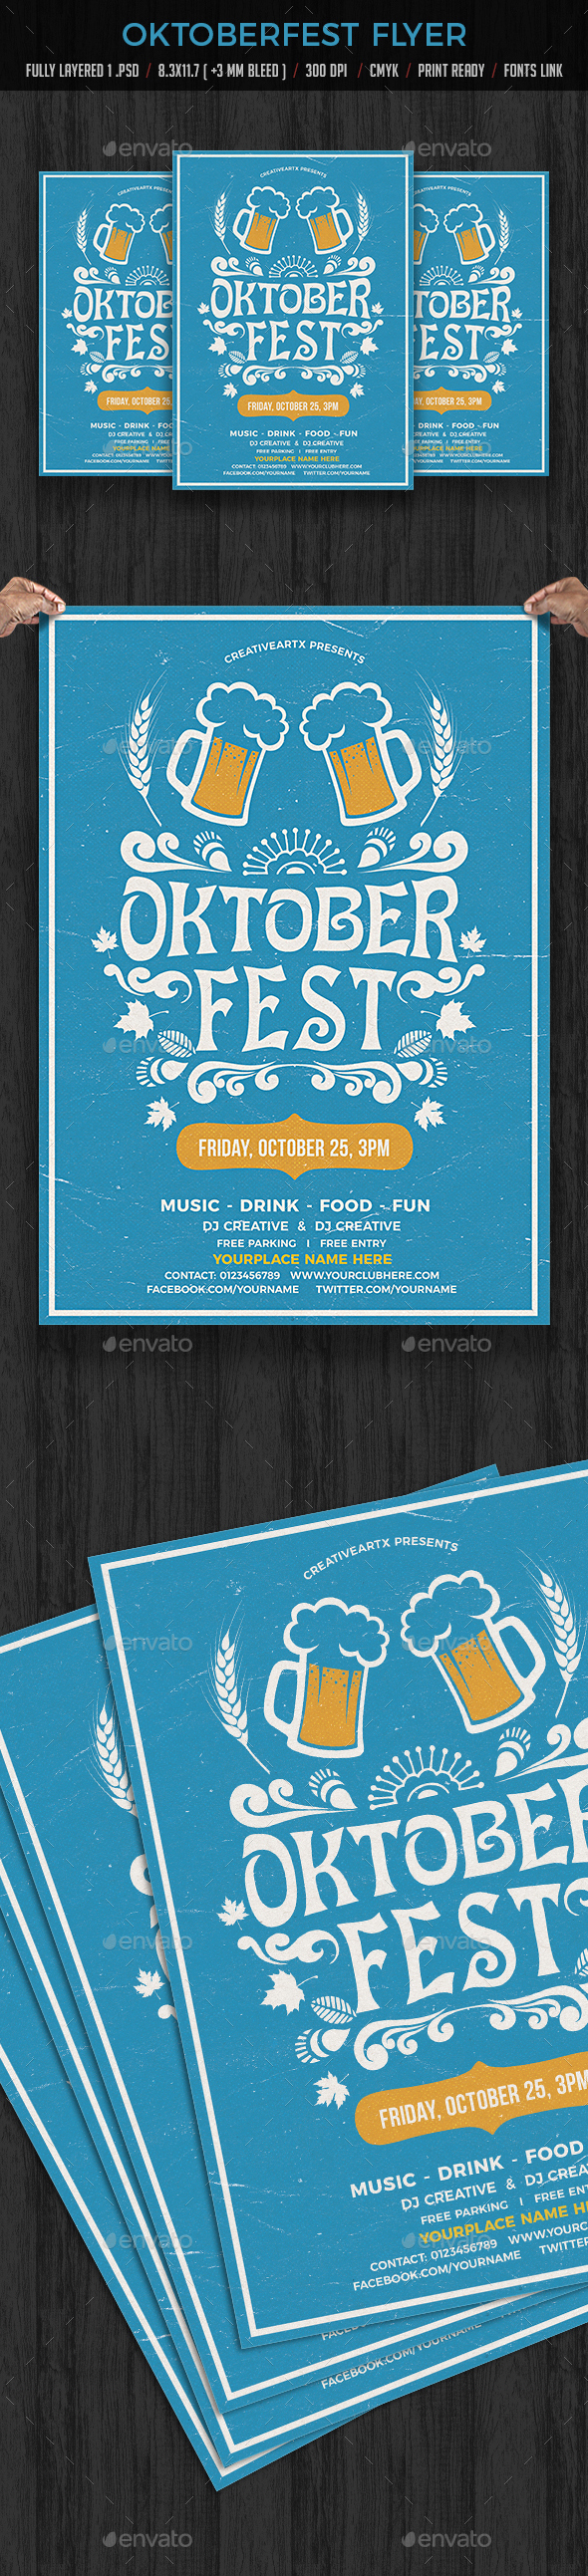 Oktoberfest Flyer - Events Flyers